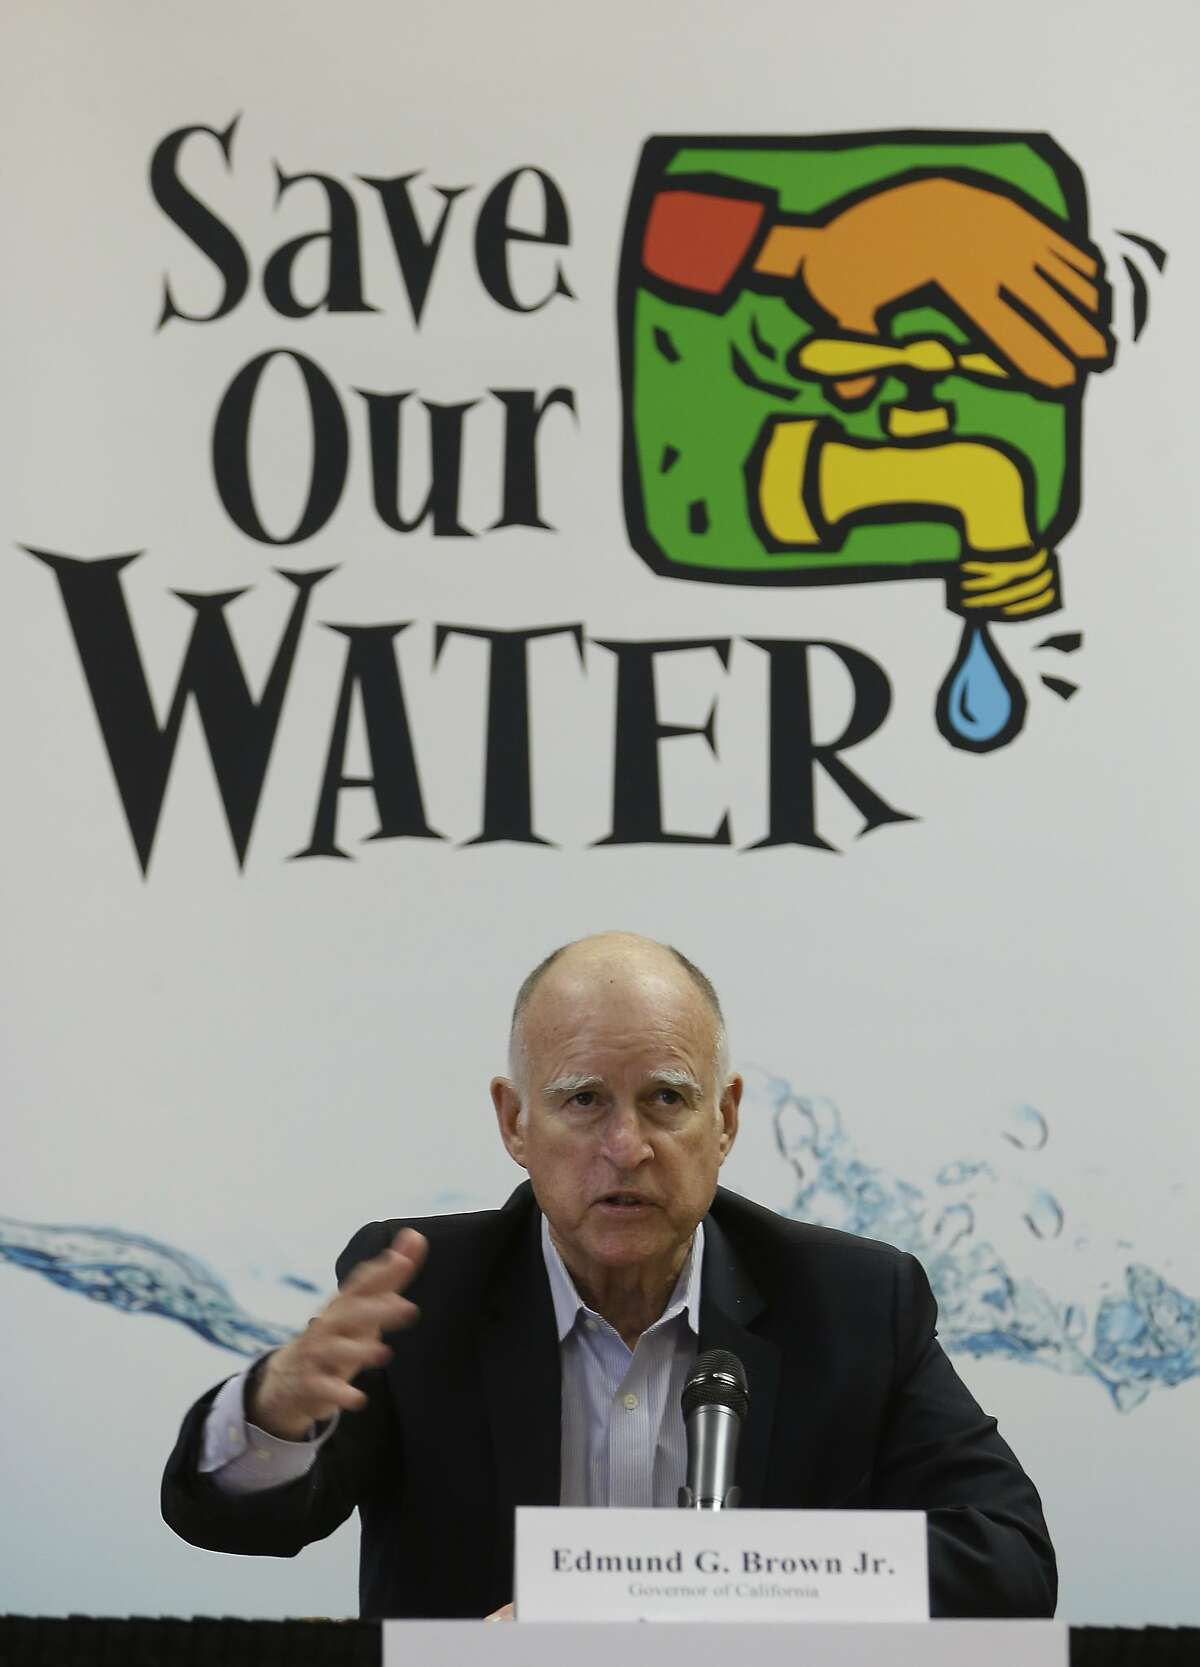 Gov. Jerry Brown talks to reporters at the after a meeting with businesses affected by the drought at his Capitol office in Sacramento, Calif., Thursday, April 16, 2015. Cities expected to slash water use in the drought are revolting against Brown's mandatory water restrictions, and dozens of agencies are telling water regulators that their assigned water use targets are unrealistic and unfair. (AP Photo/Rich Pedroncelli)